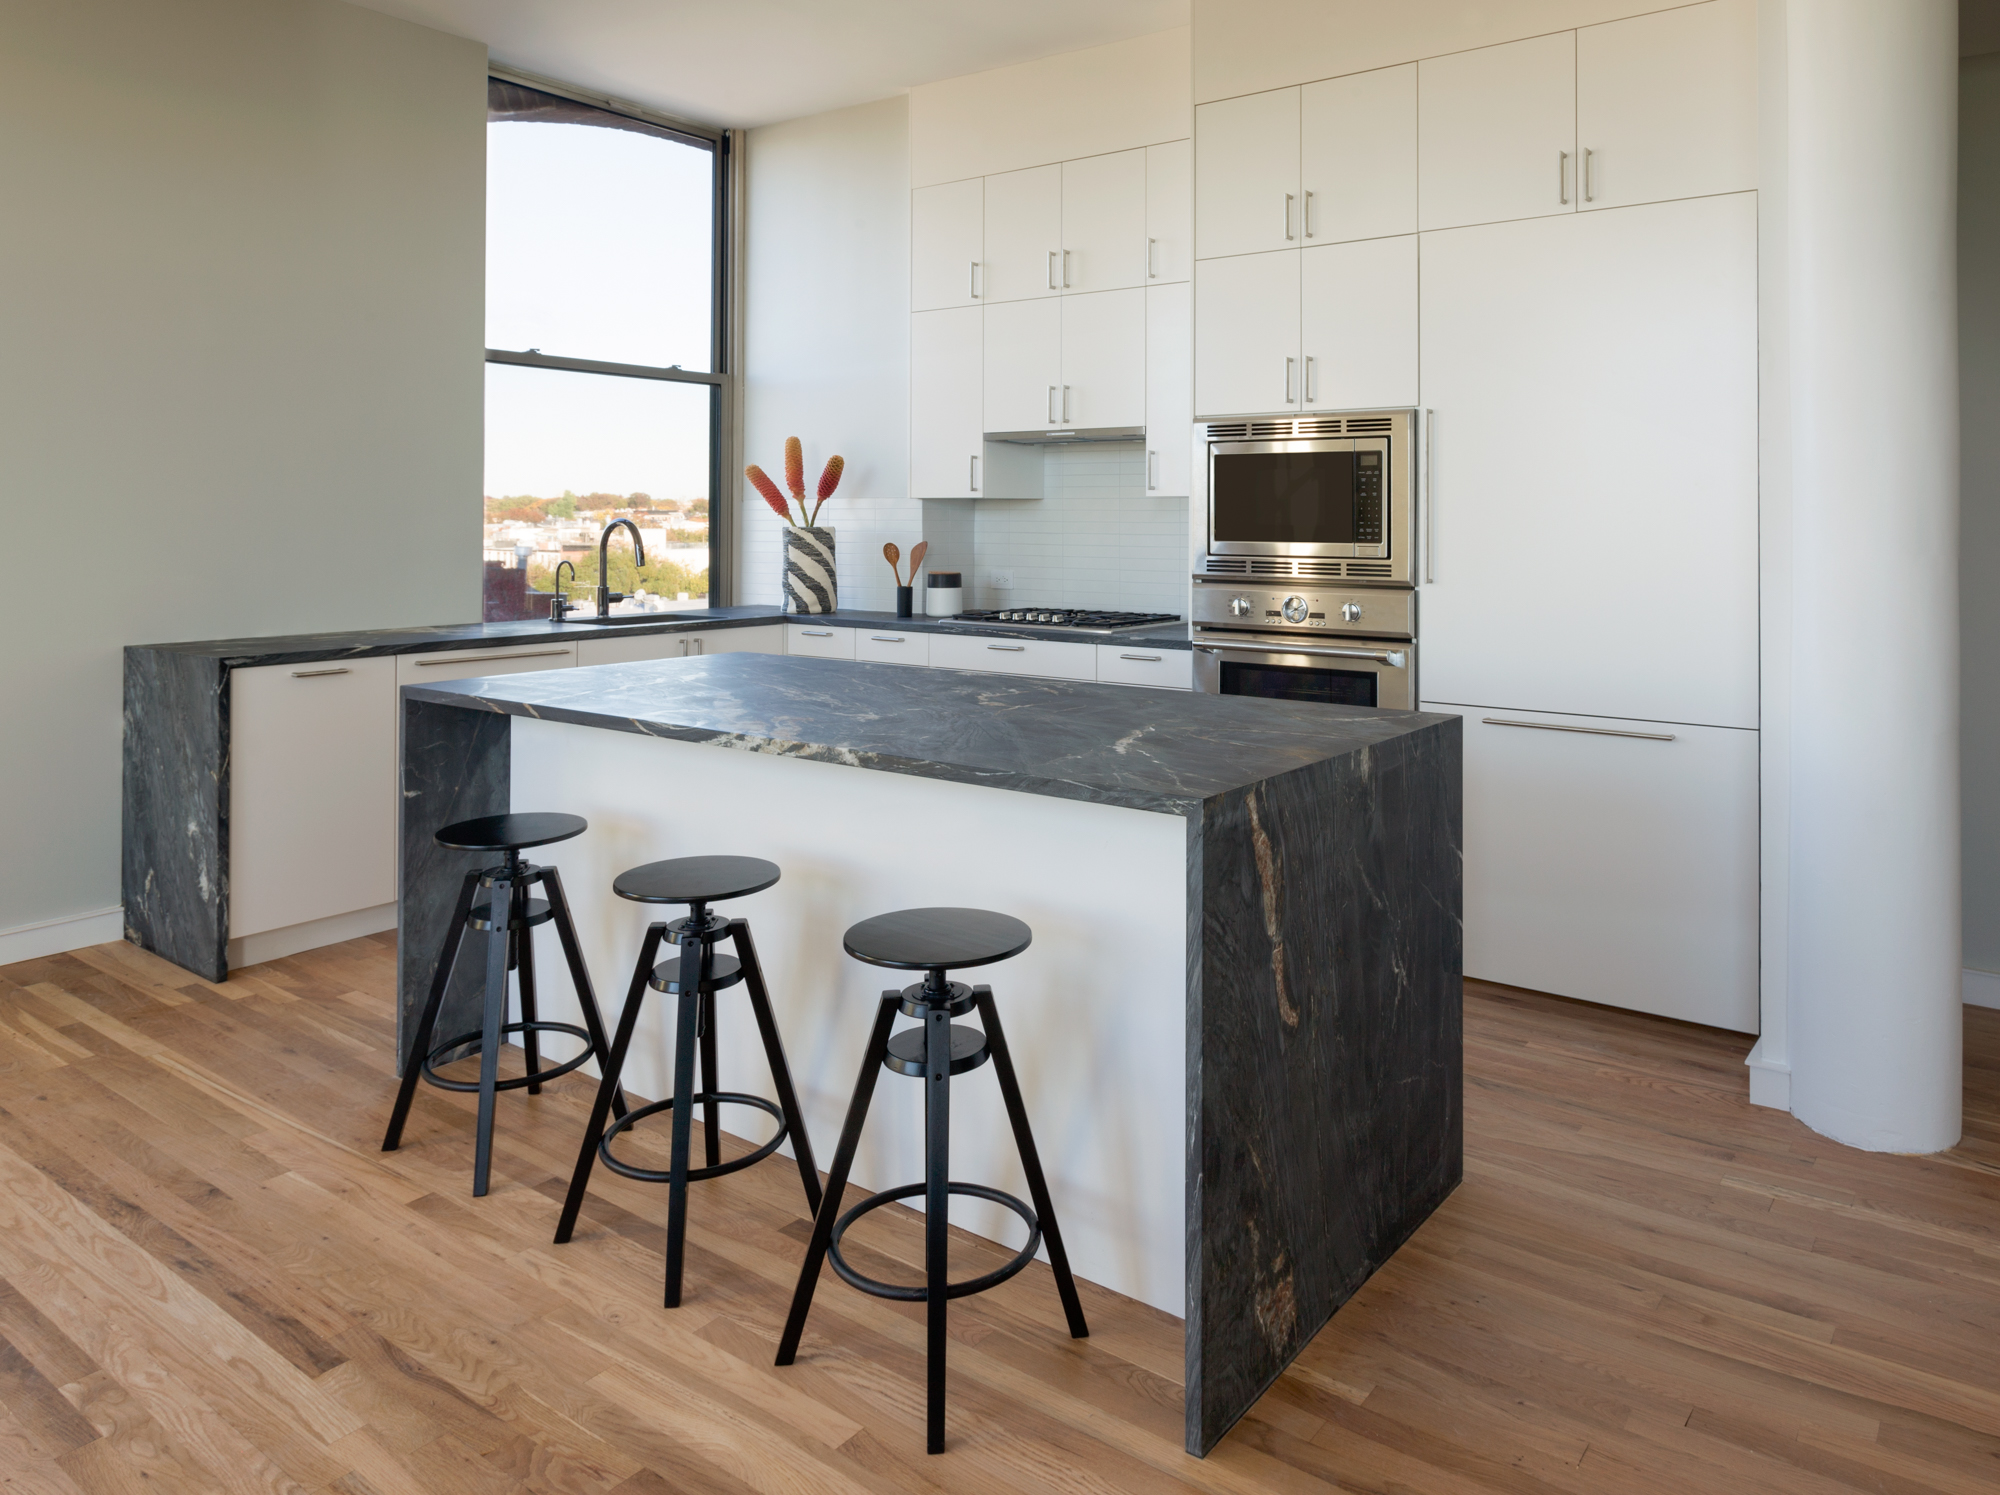 Park Slope kitchen with custom marble waterfall island by Atelier Armbruster